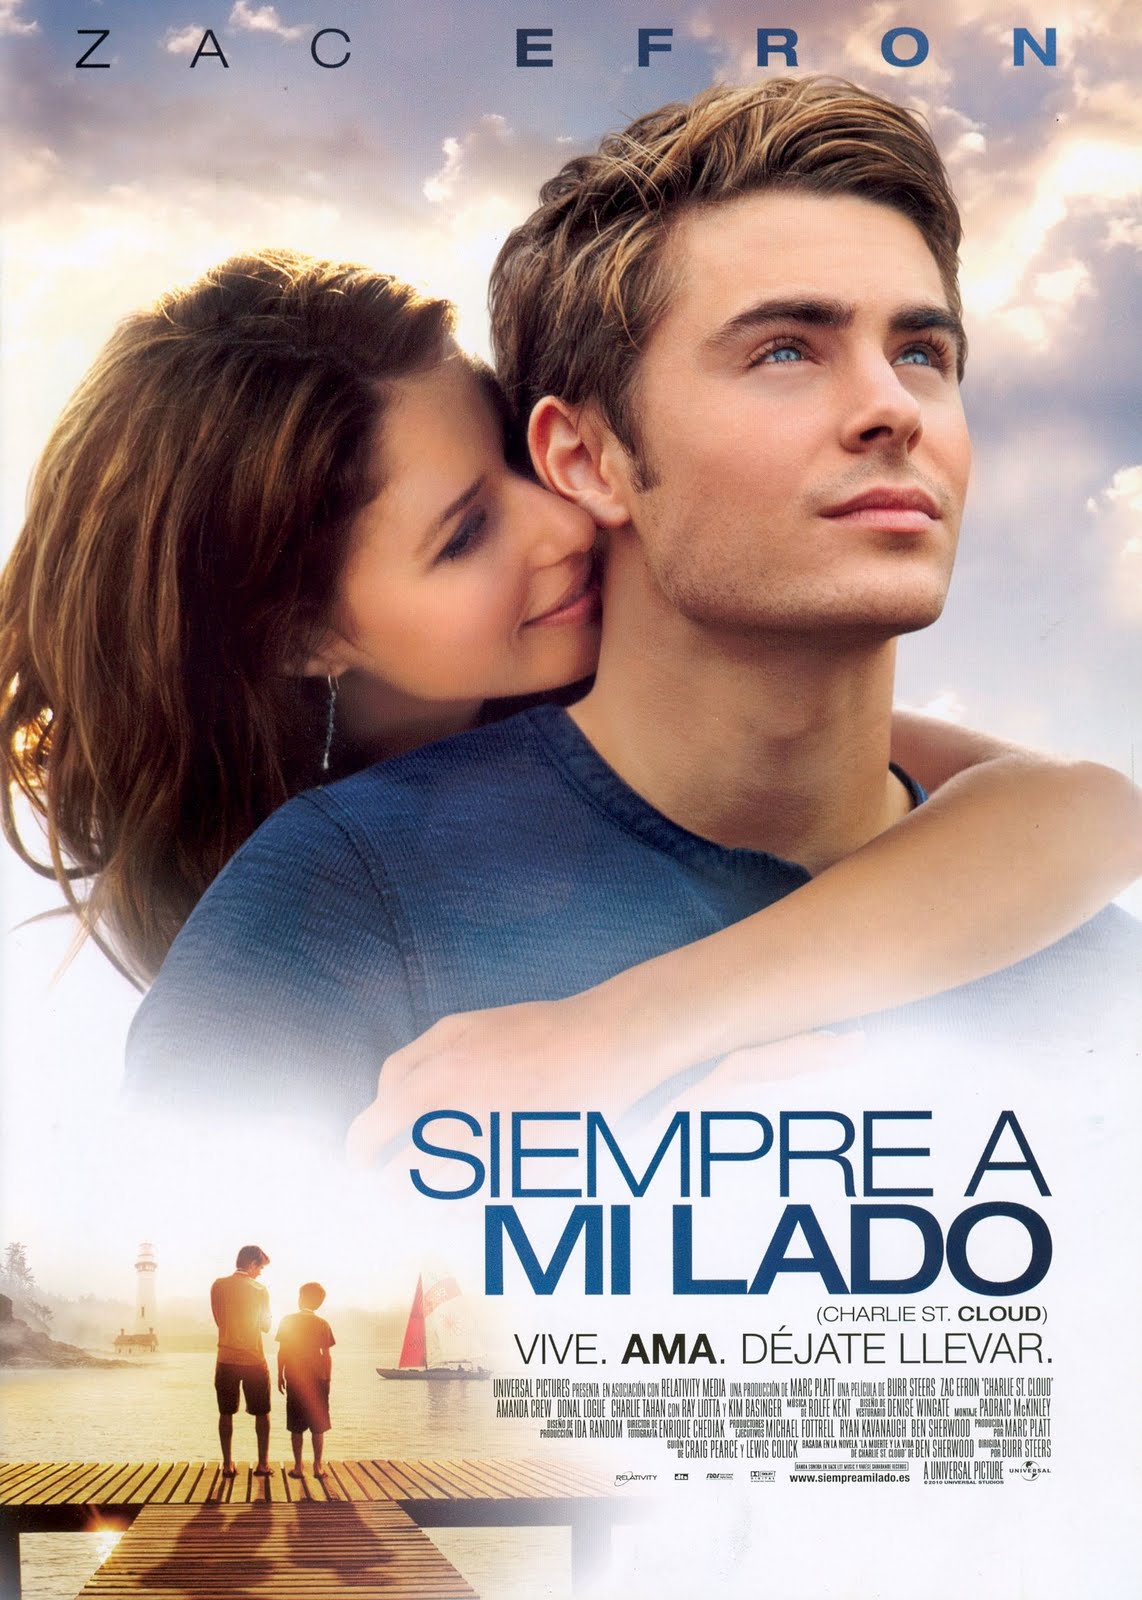 The Death And Life Of Charlie St. Cloud (2010)